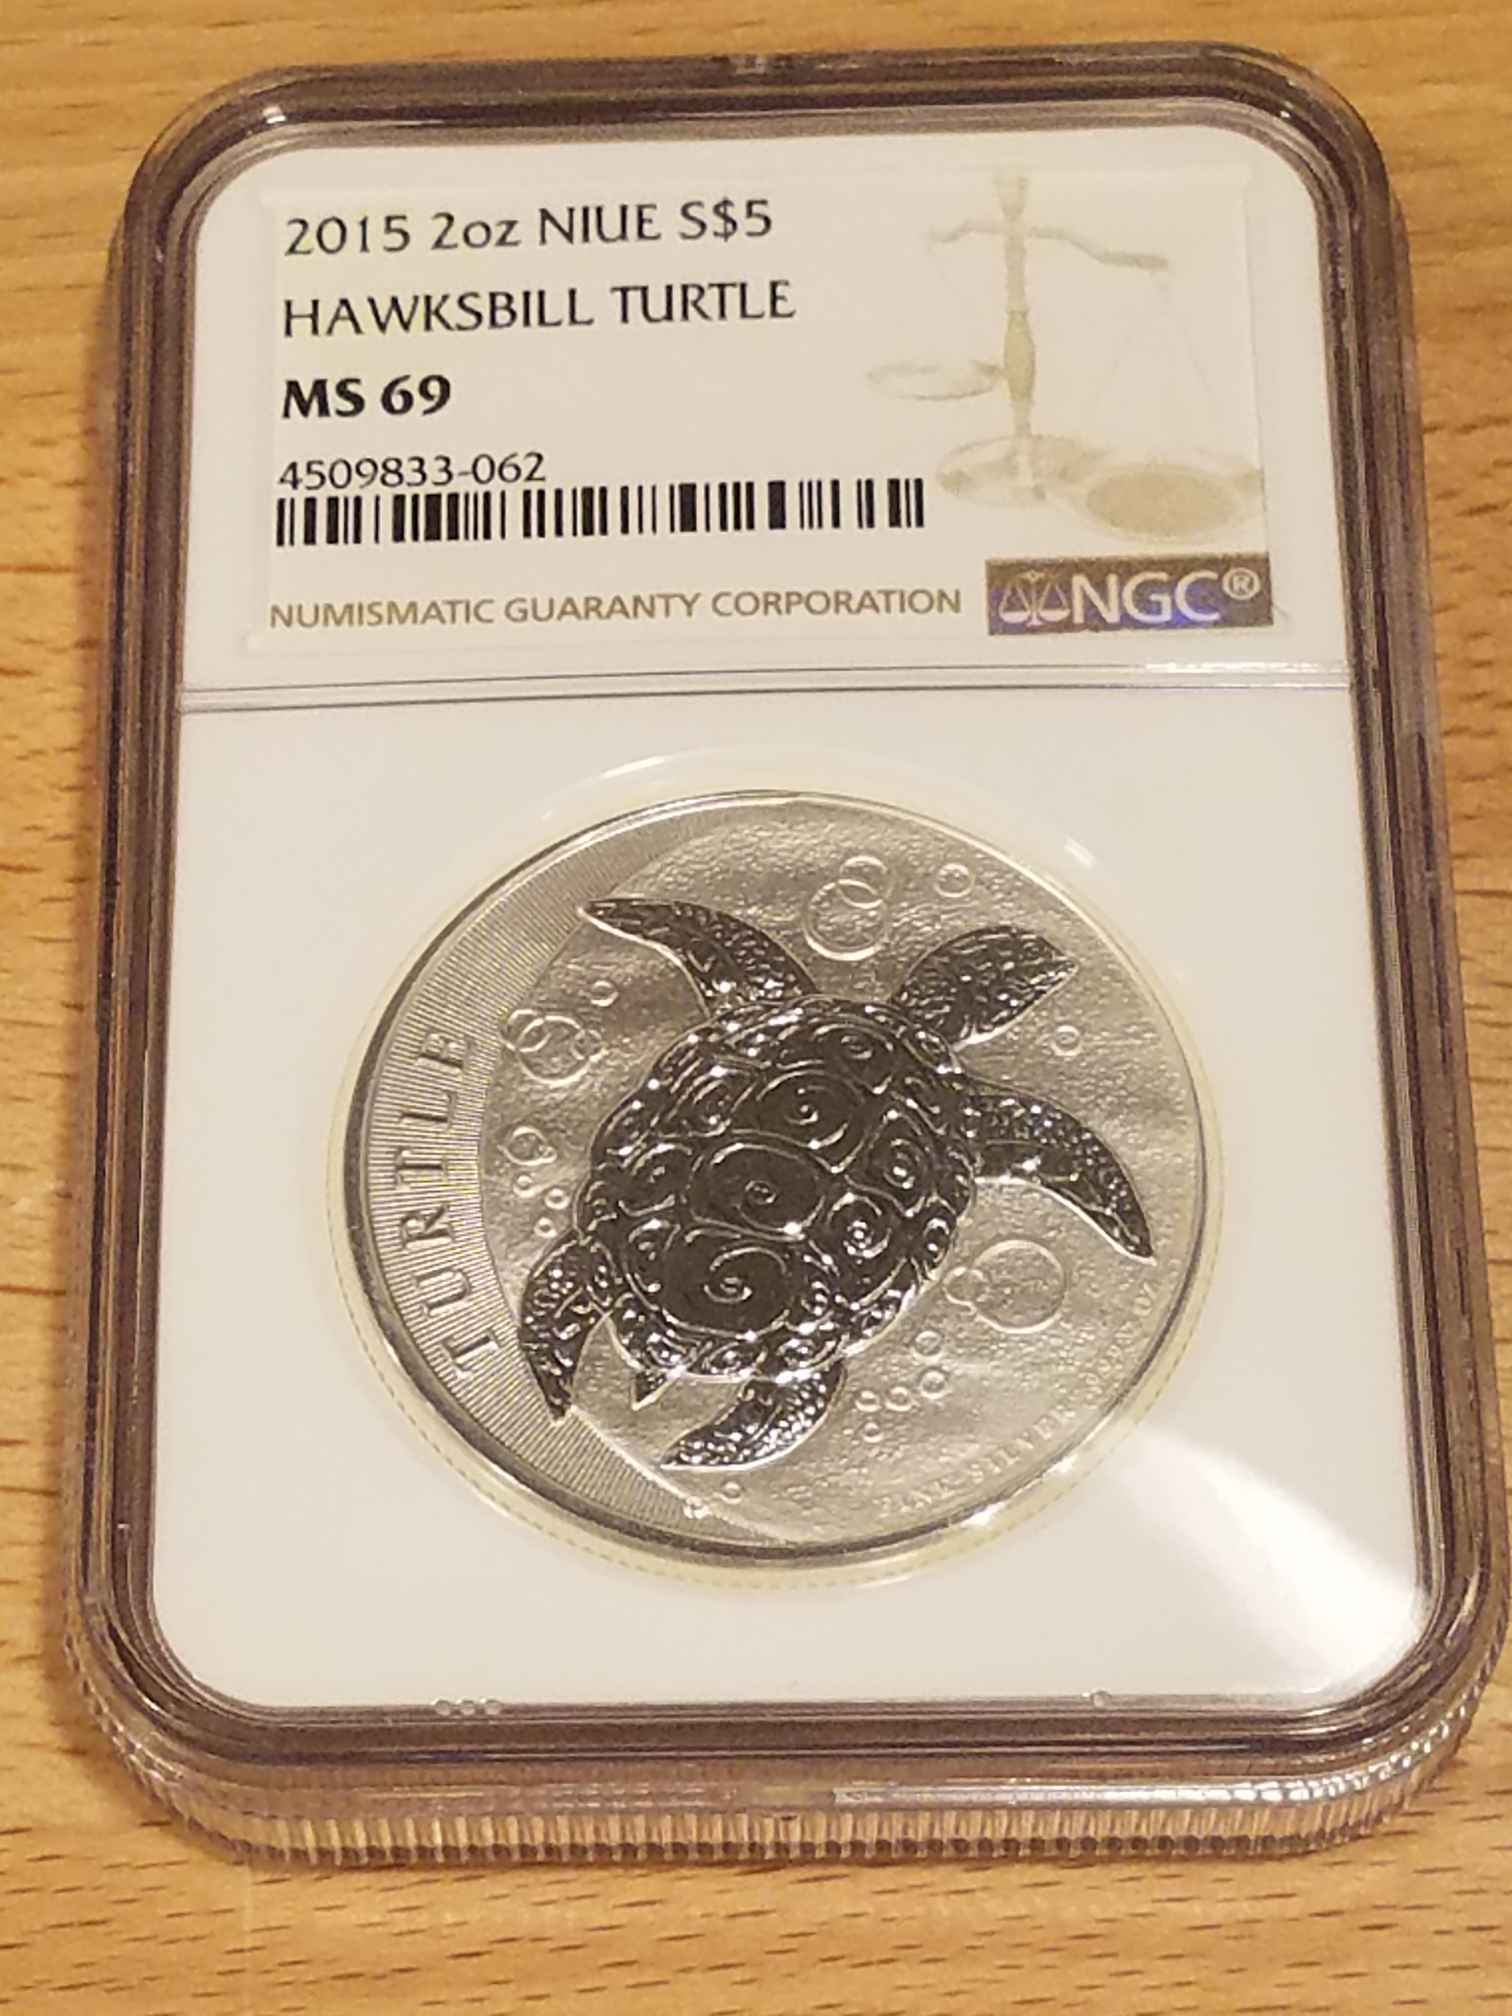 2015 2 oz Silver $5 NIUE Hawksbill Turtle NGC MS69